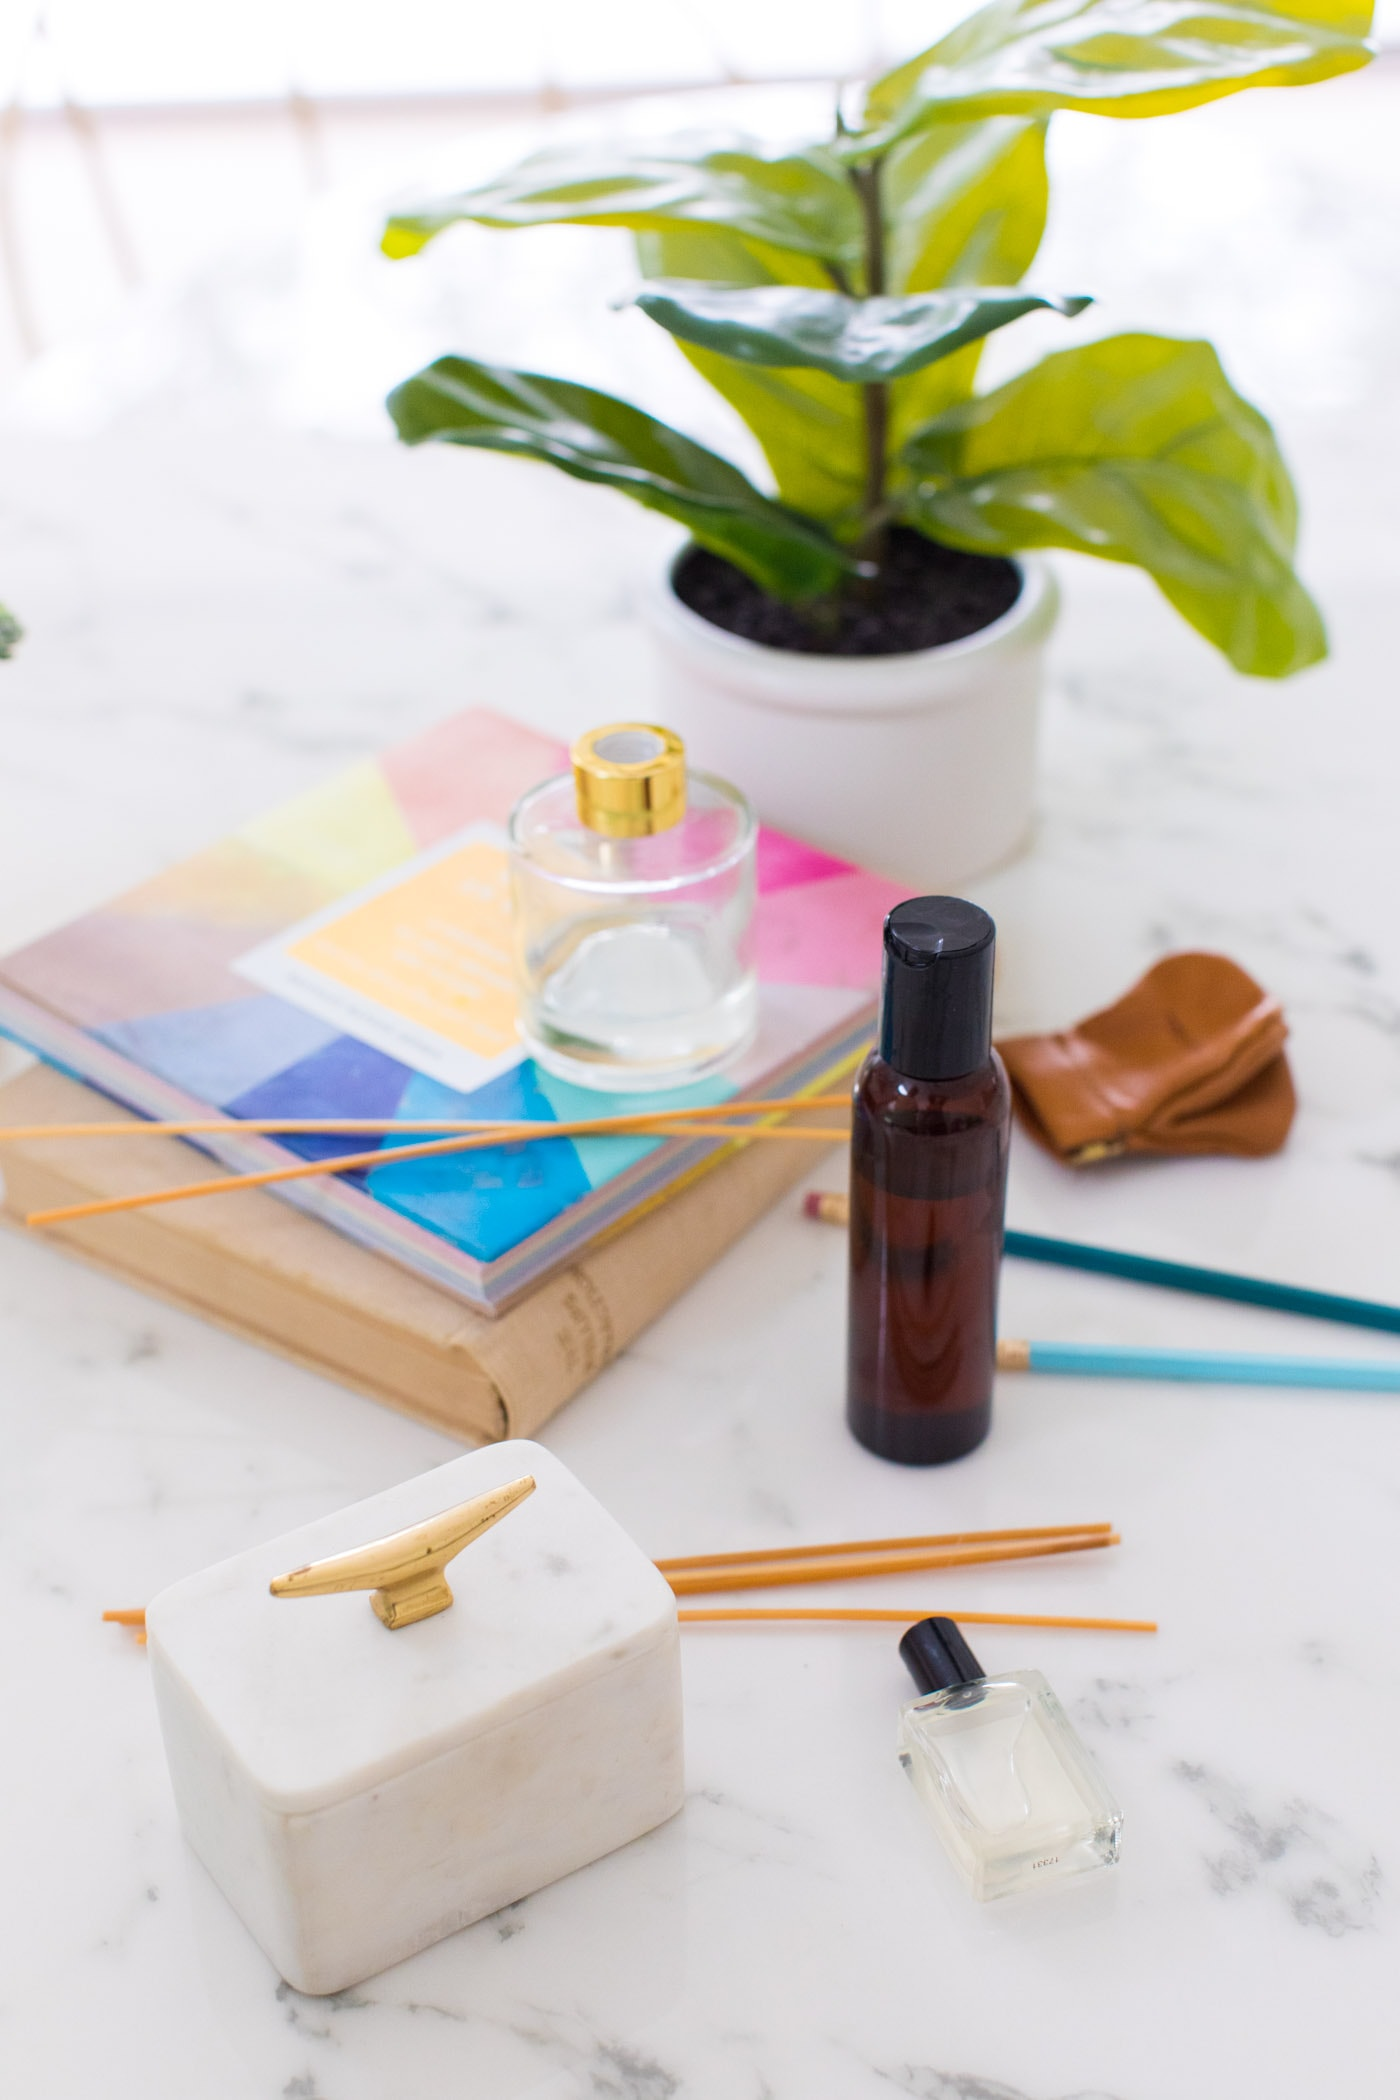 photo of supplies to make a reed diffuser